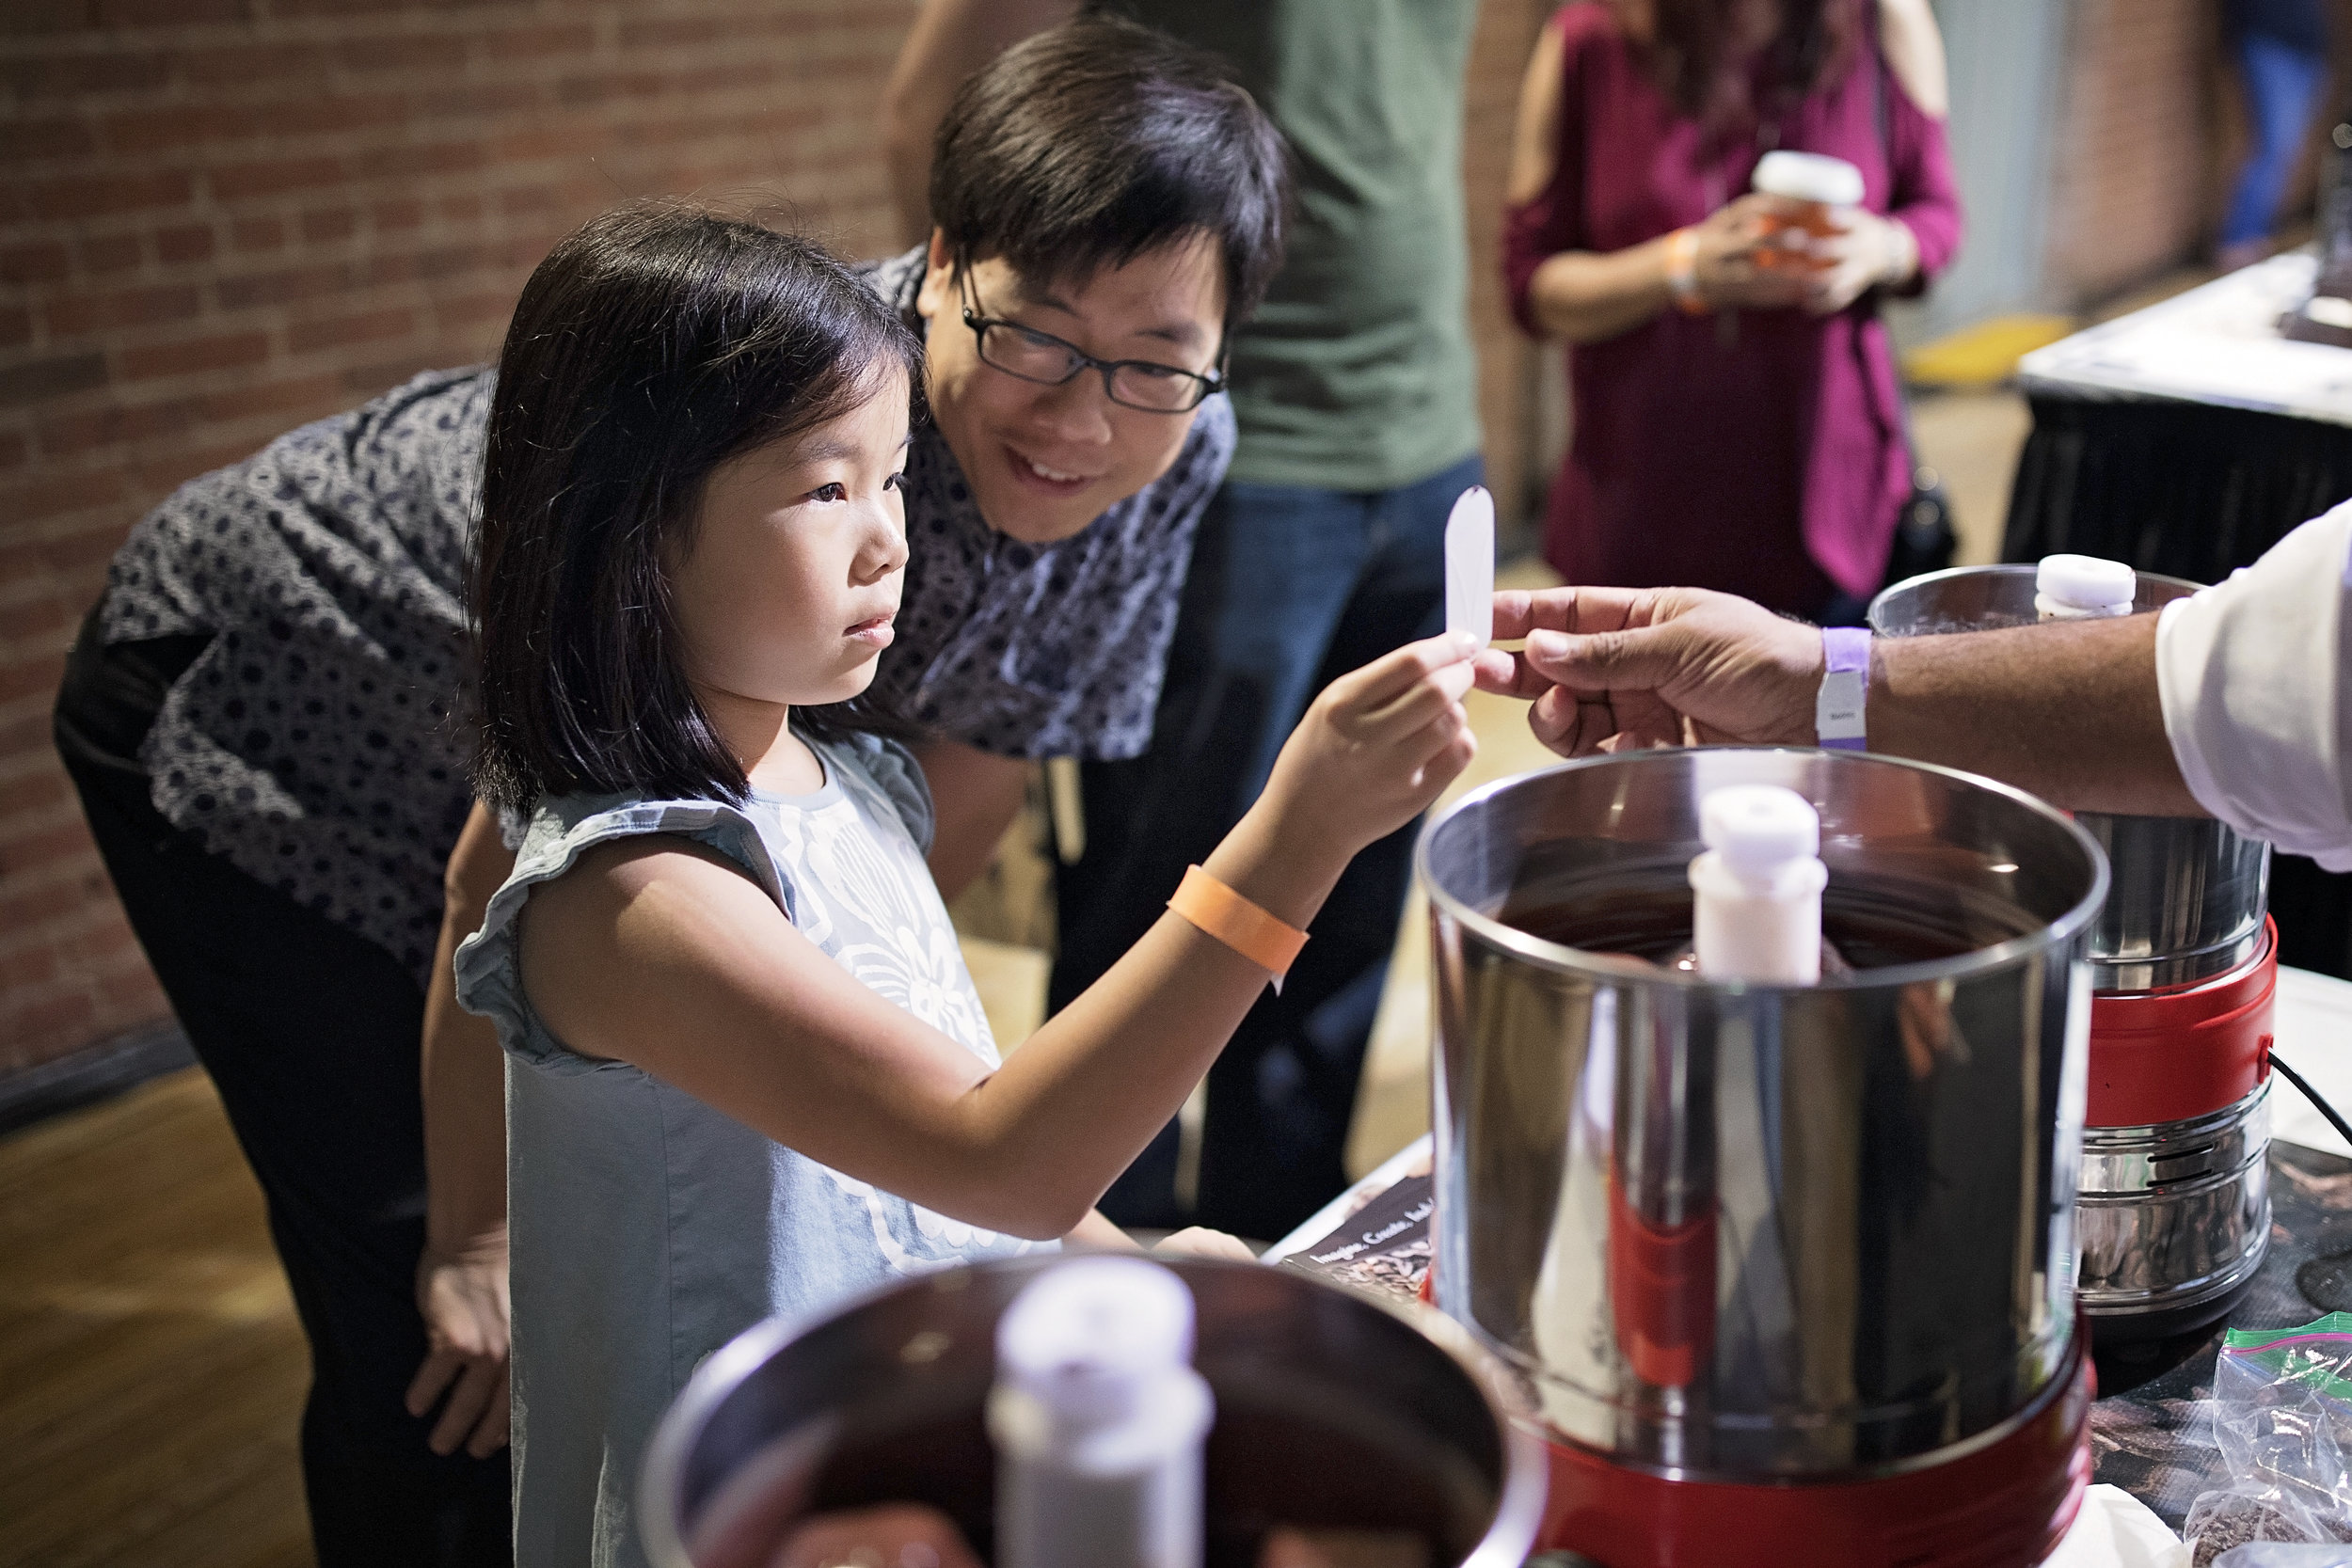 Kids and parents alike are invited to indulge their sweet tooth. Photos courtesy of The Big Chocolate Show.